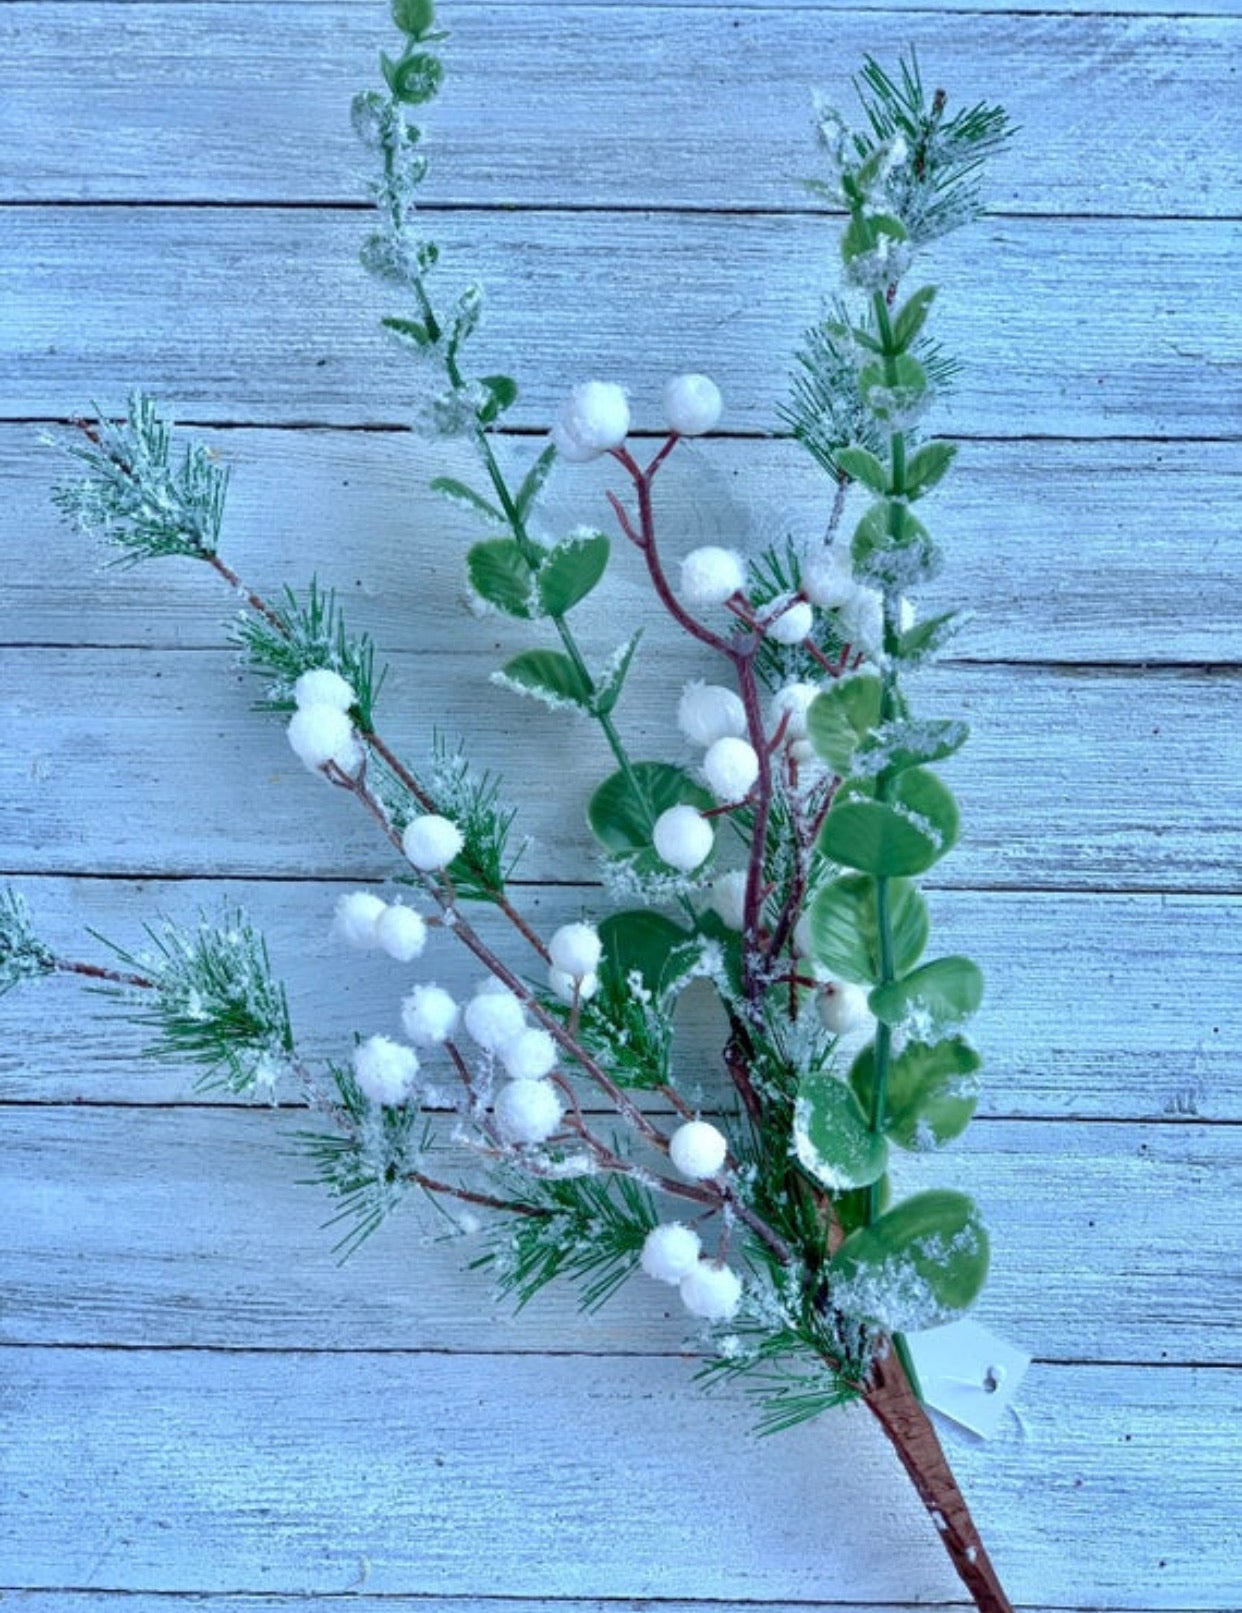 Pine with white berries